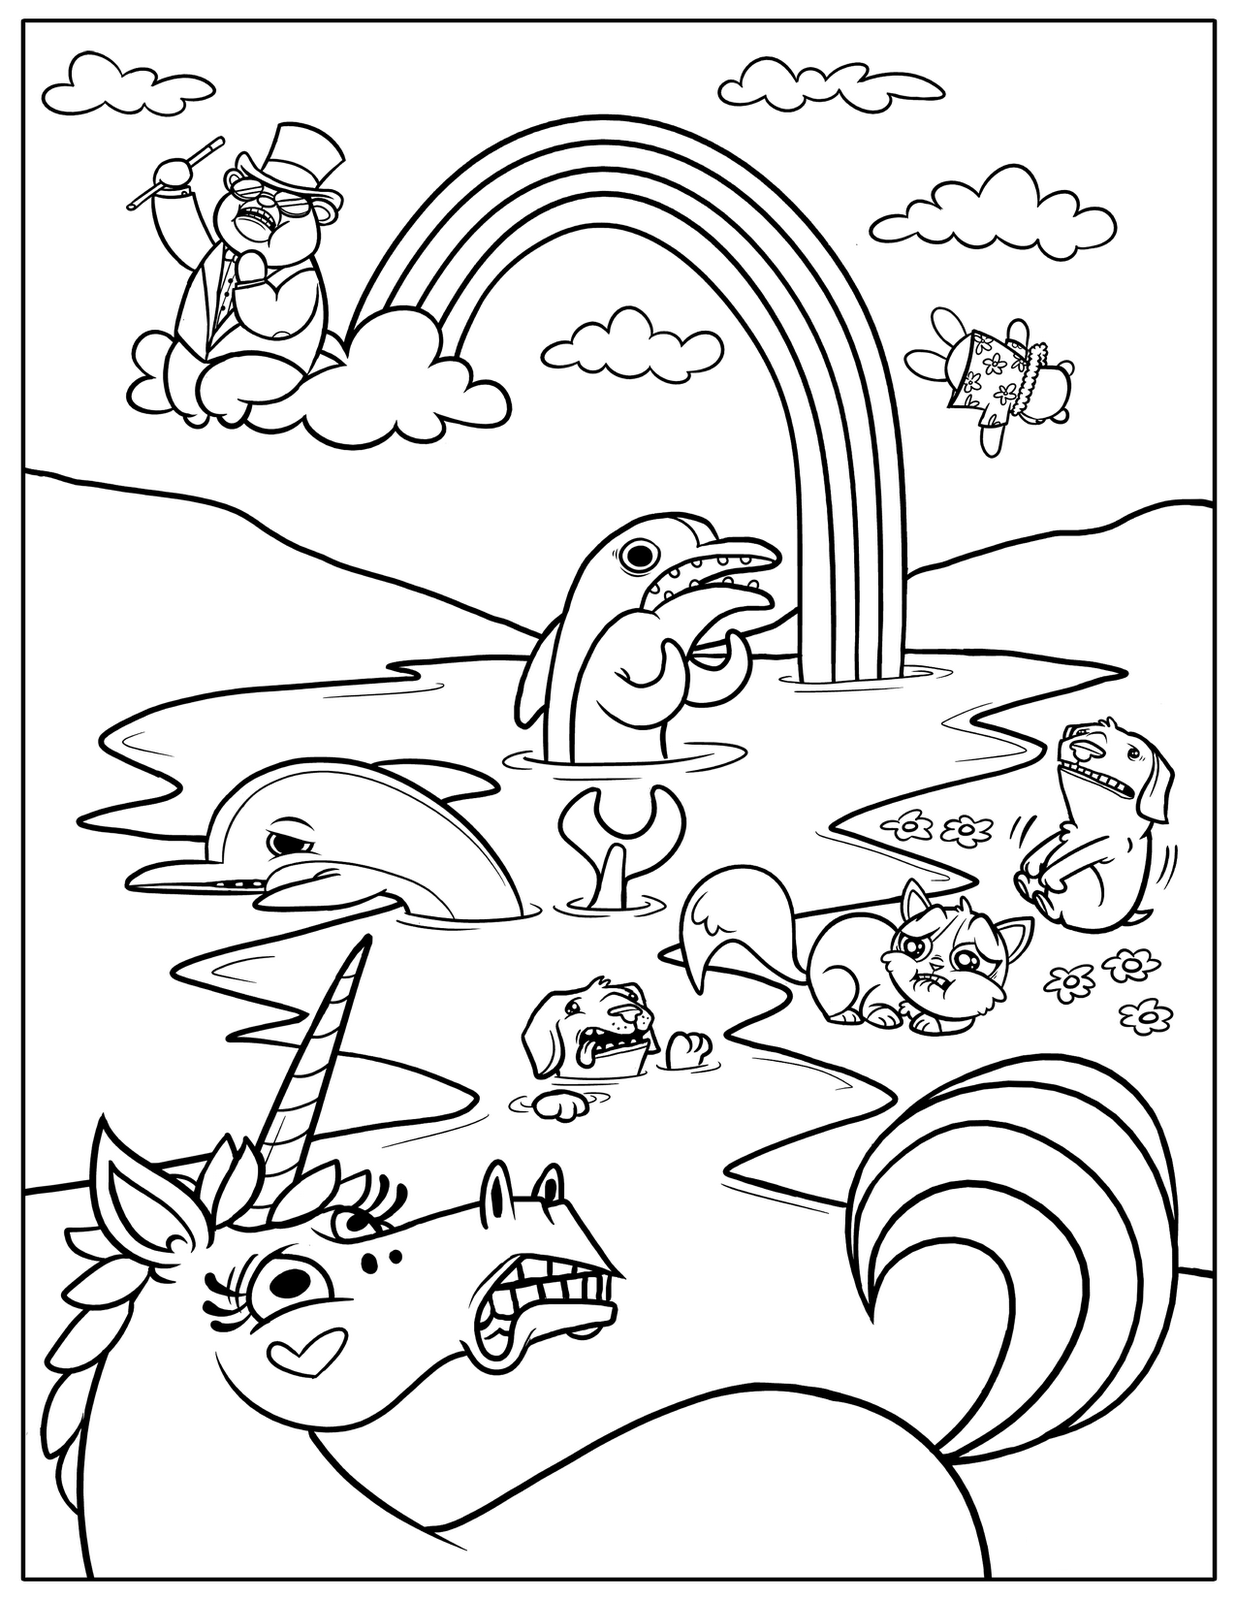 rainbow coloring pages kids printable - Colour Worksheet For Kids